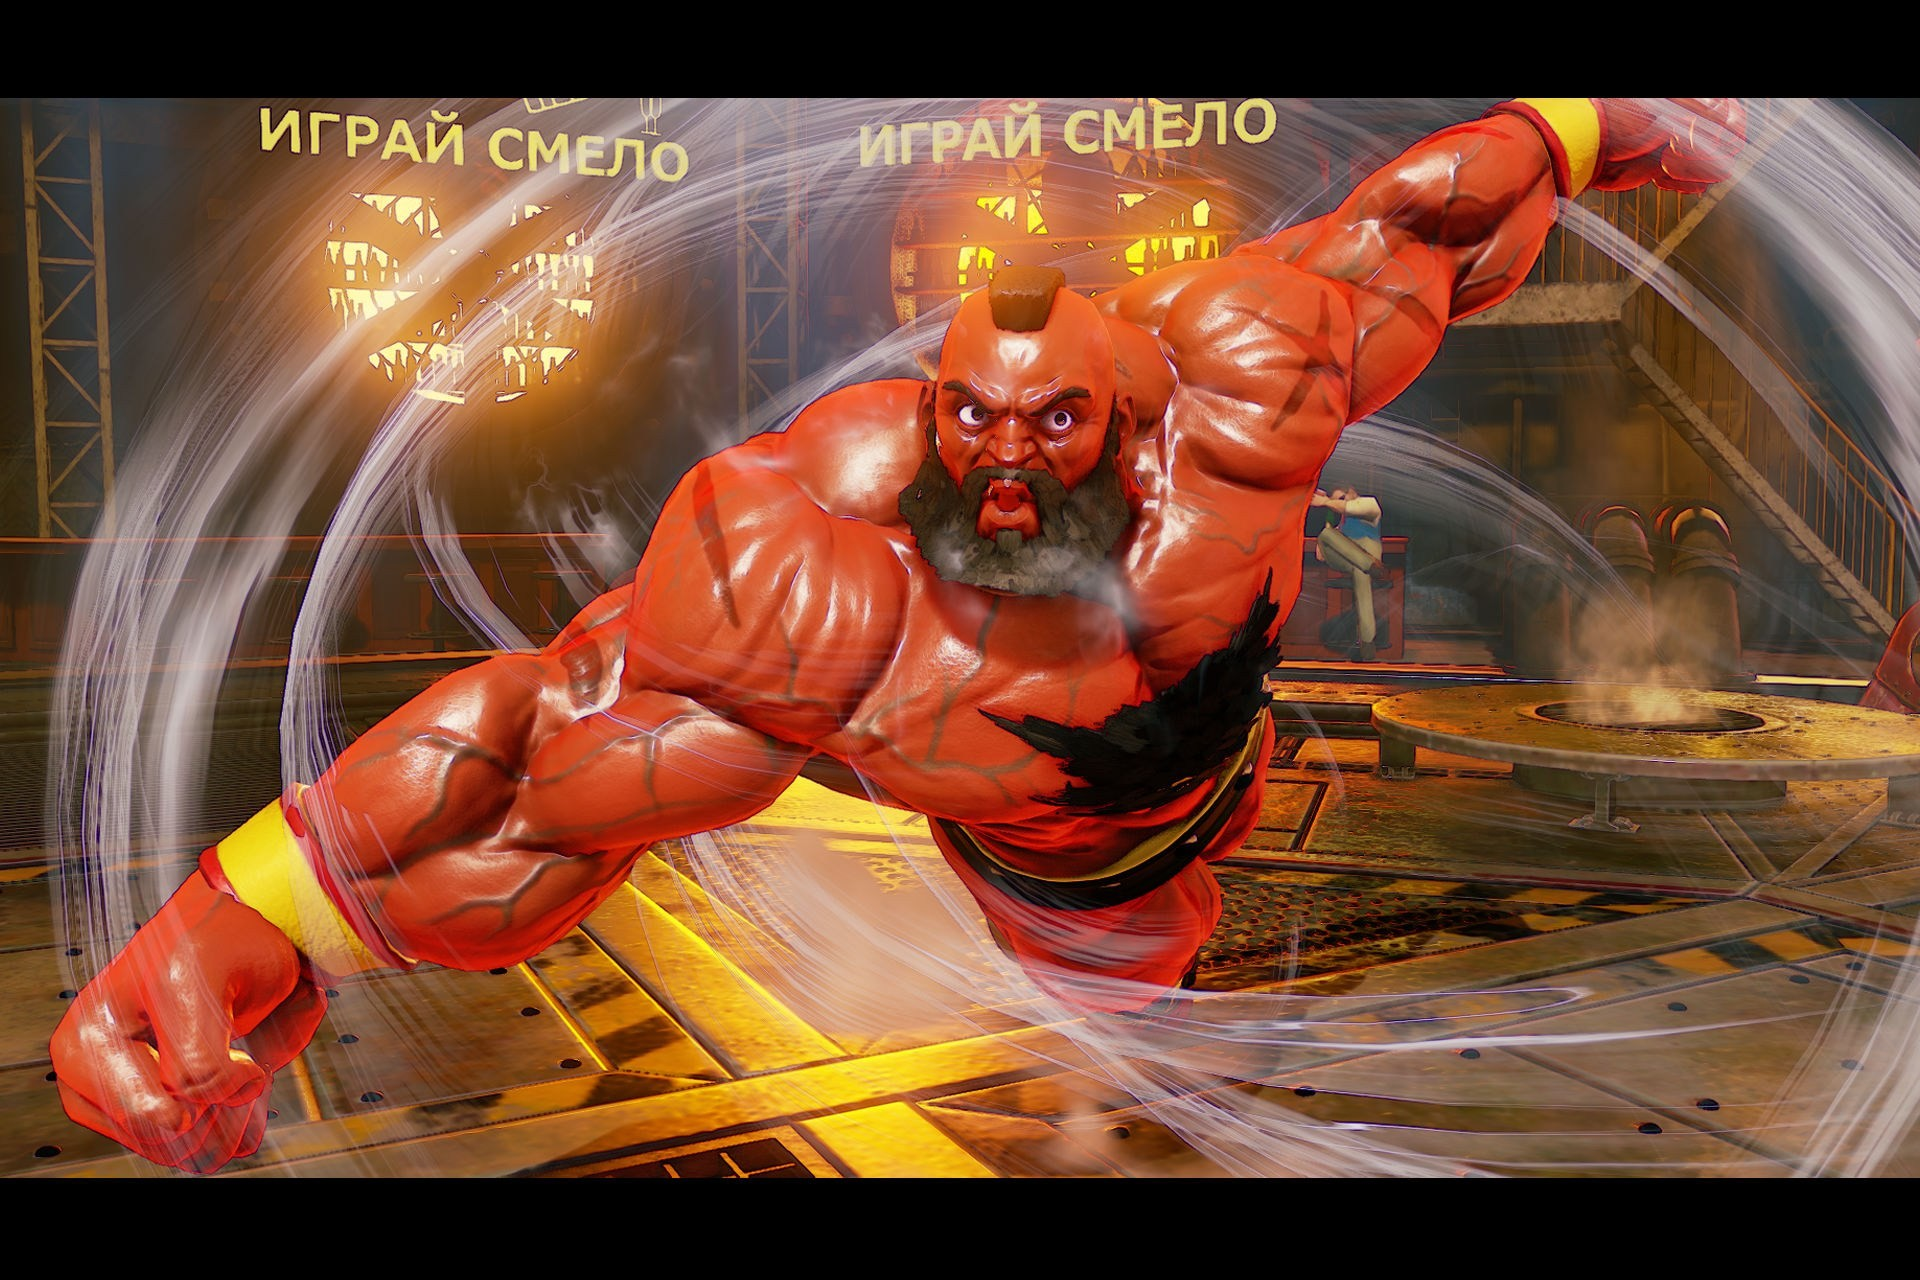 David giraud zangief